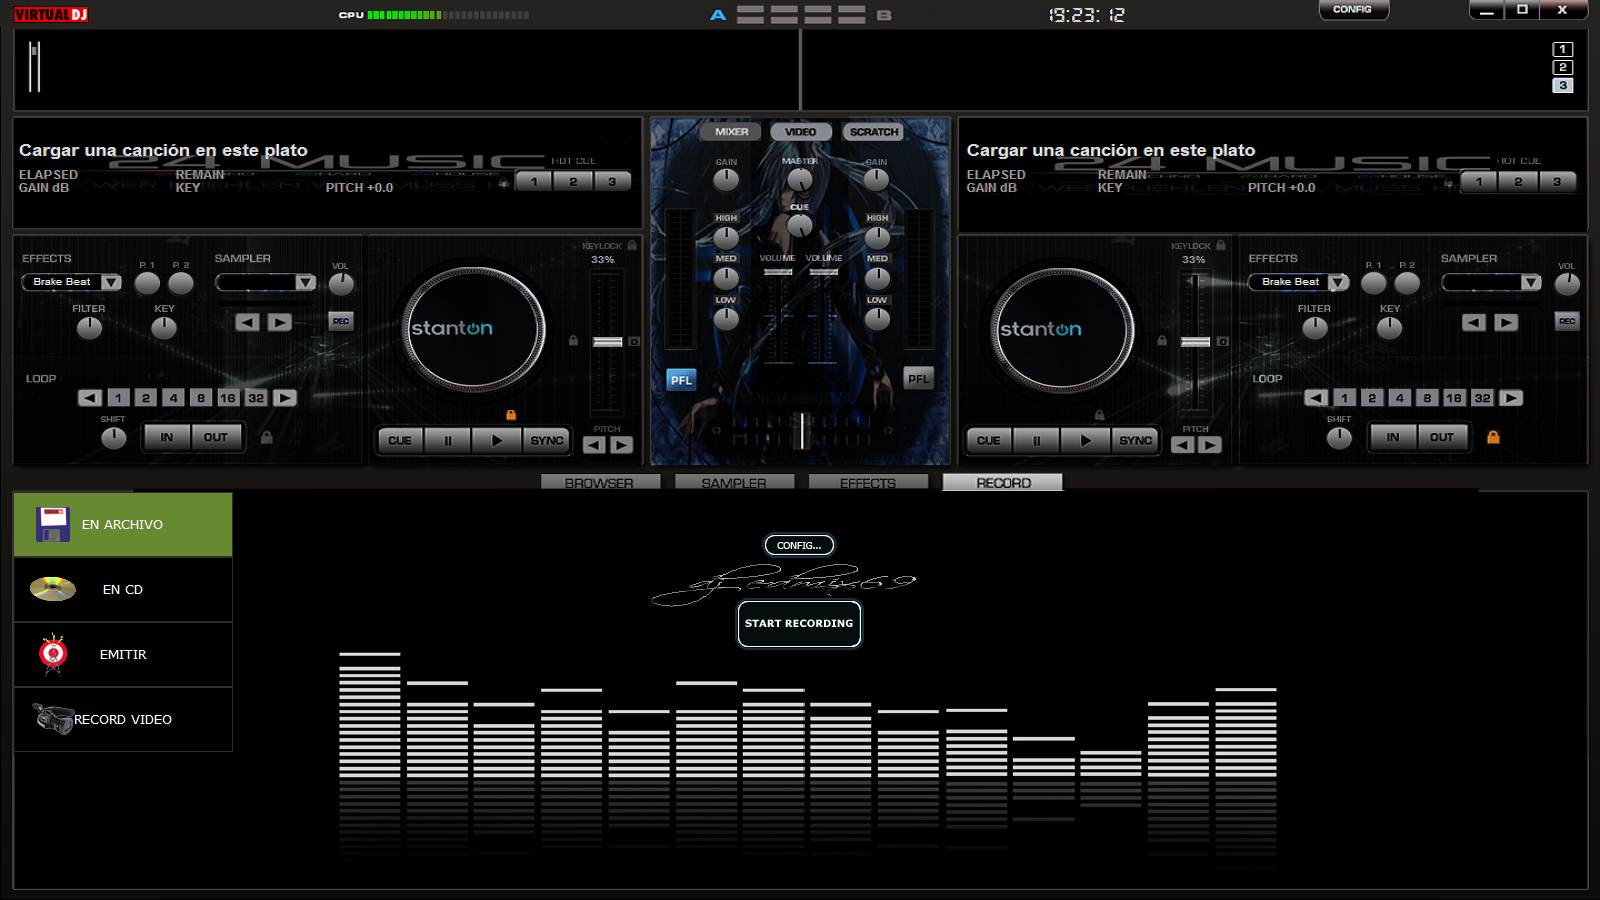 Download virtual dj skins | Virtual 8 pro skin  2019-03-04